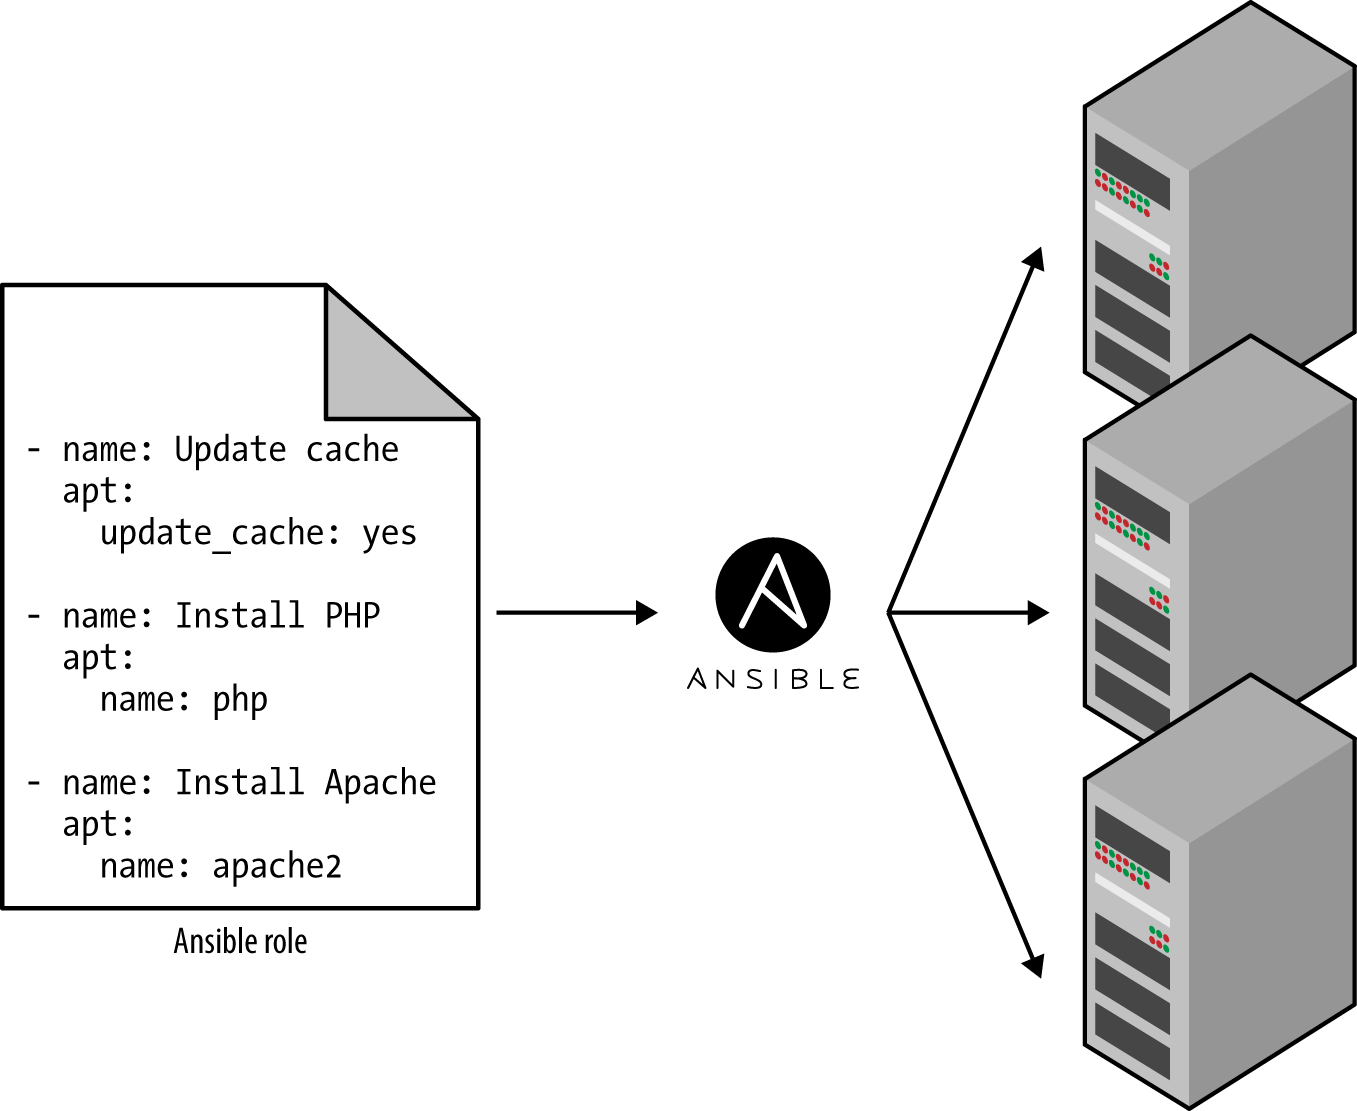 A configuration management tool like Ansible can execute your code across a large number of servers